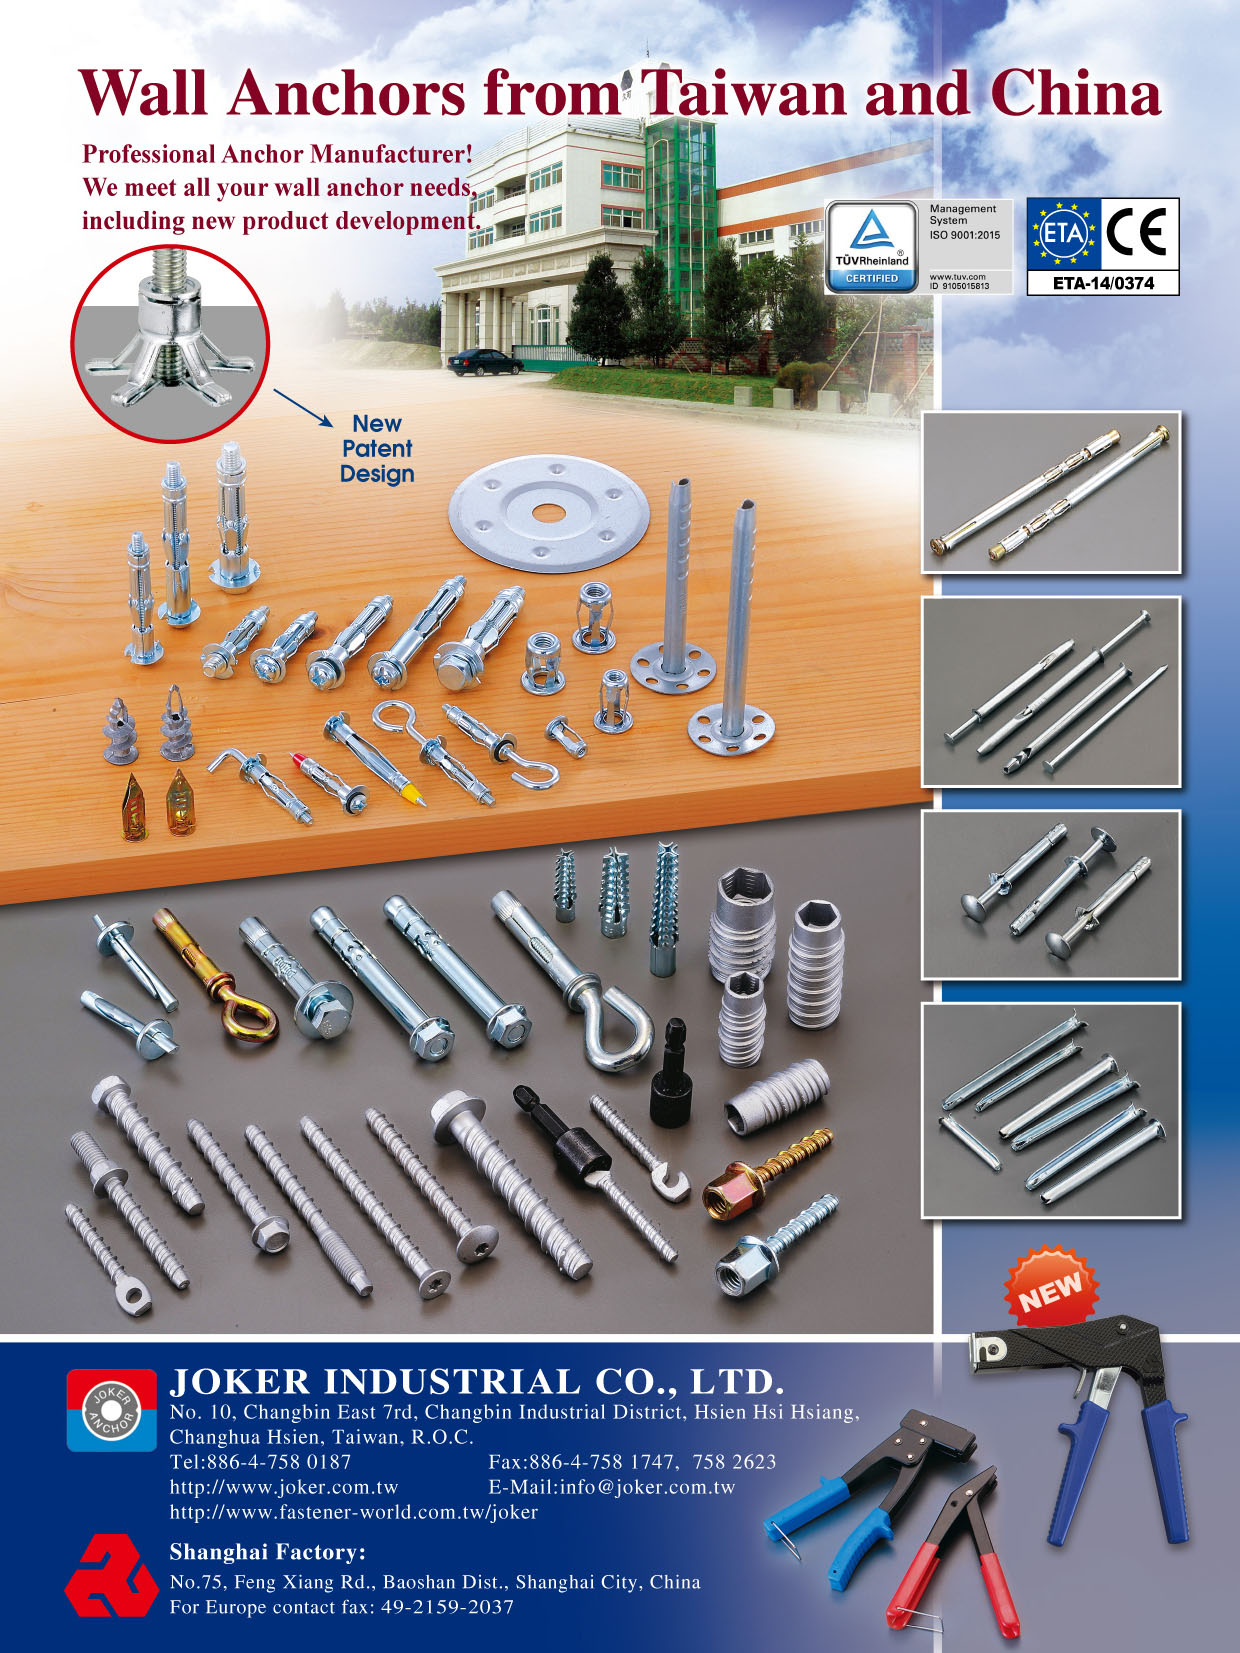 JOKER INDUSTRIAL CO., LTD.  Online Catalogues